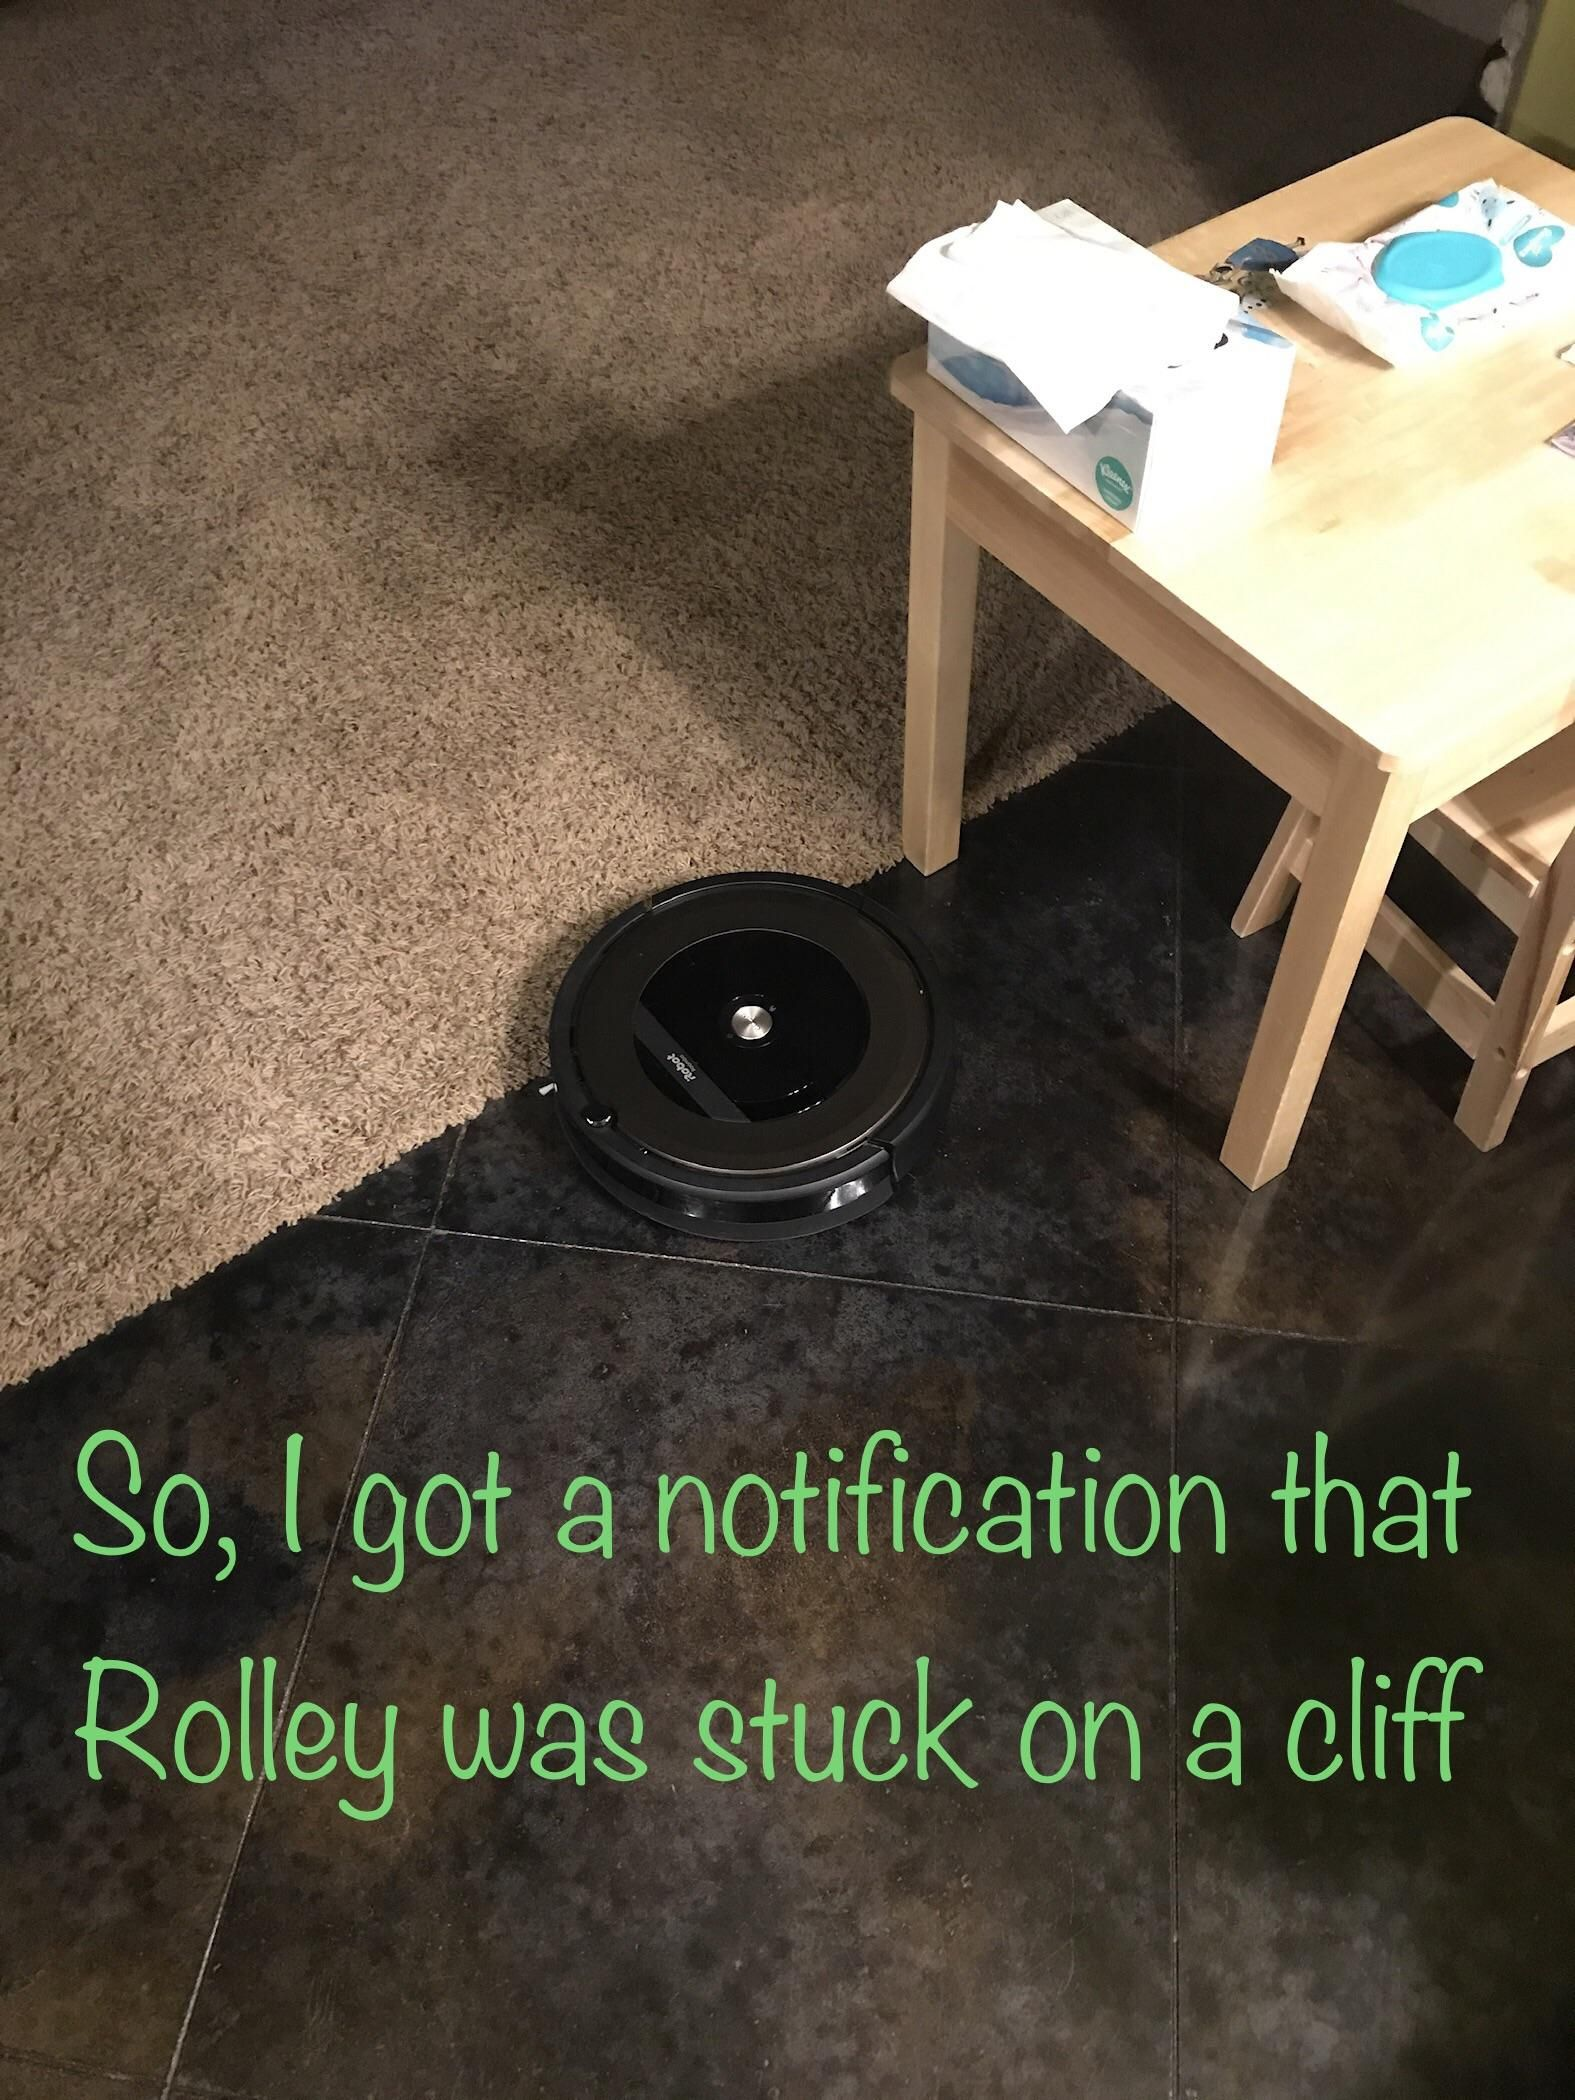 My Roomba thought it was falling off a cliff, so it quivered here in fear until his battery died.